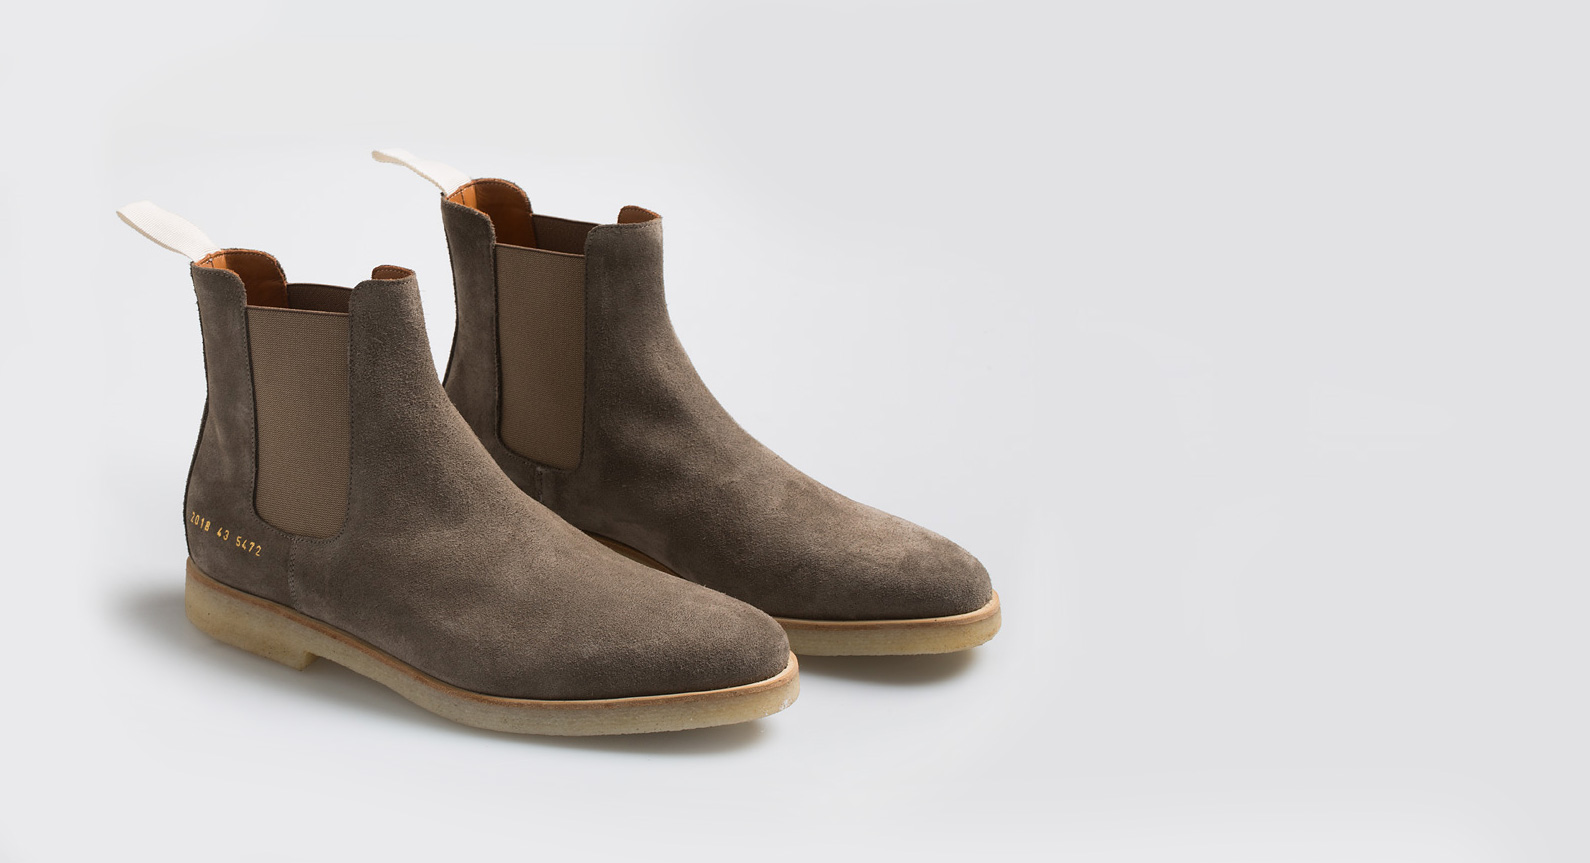 Common Projects Chelsea Boots: The OPUMO Review